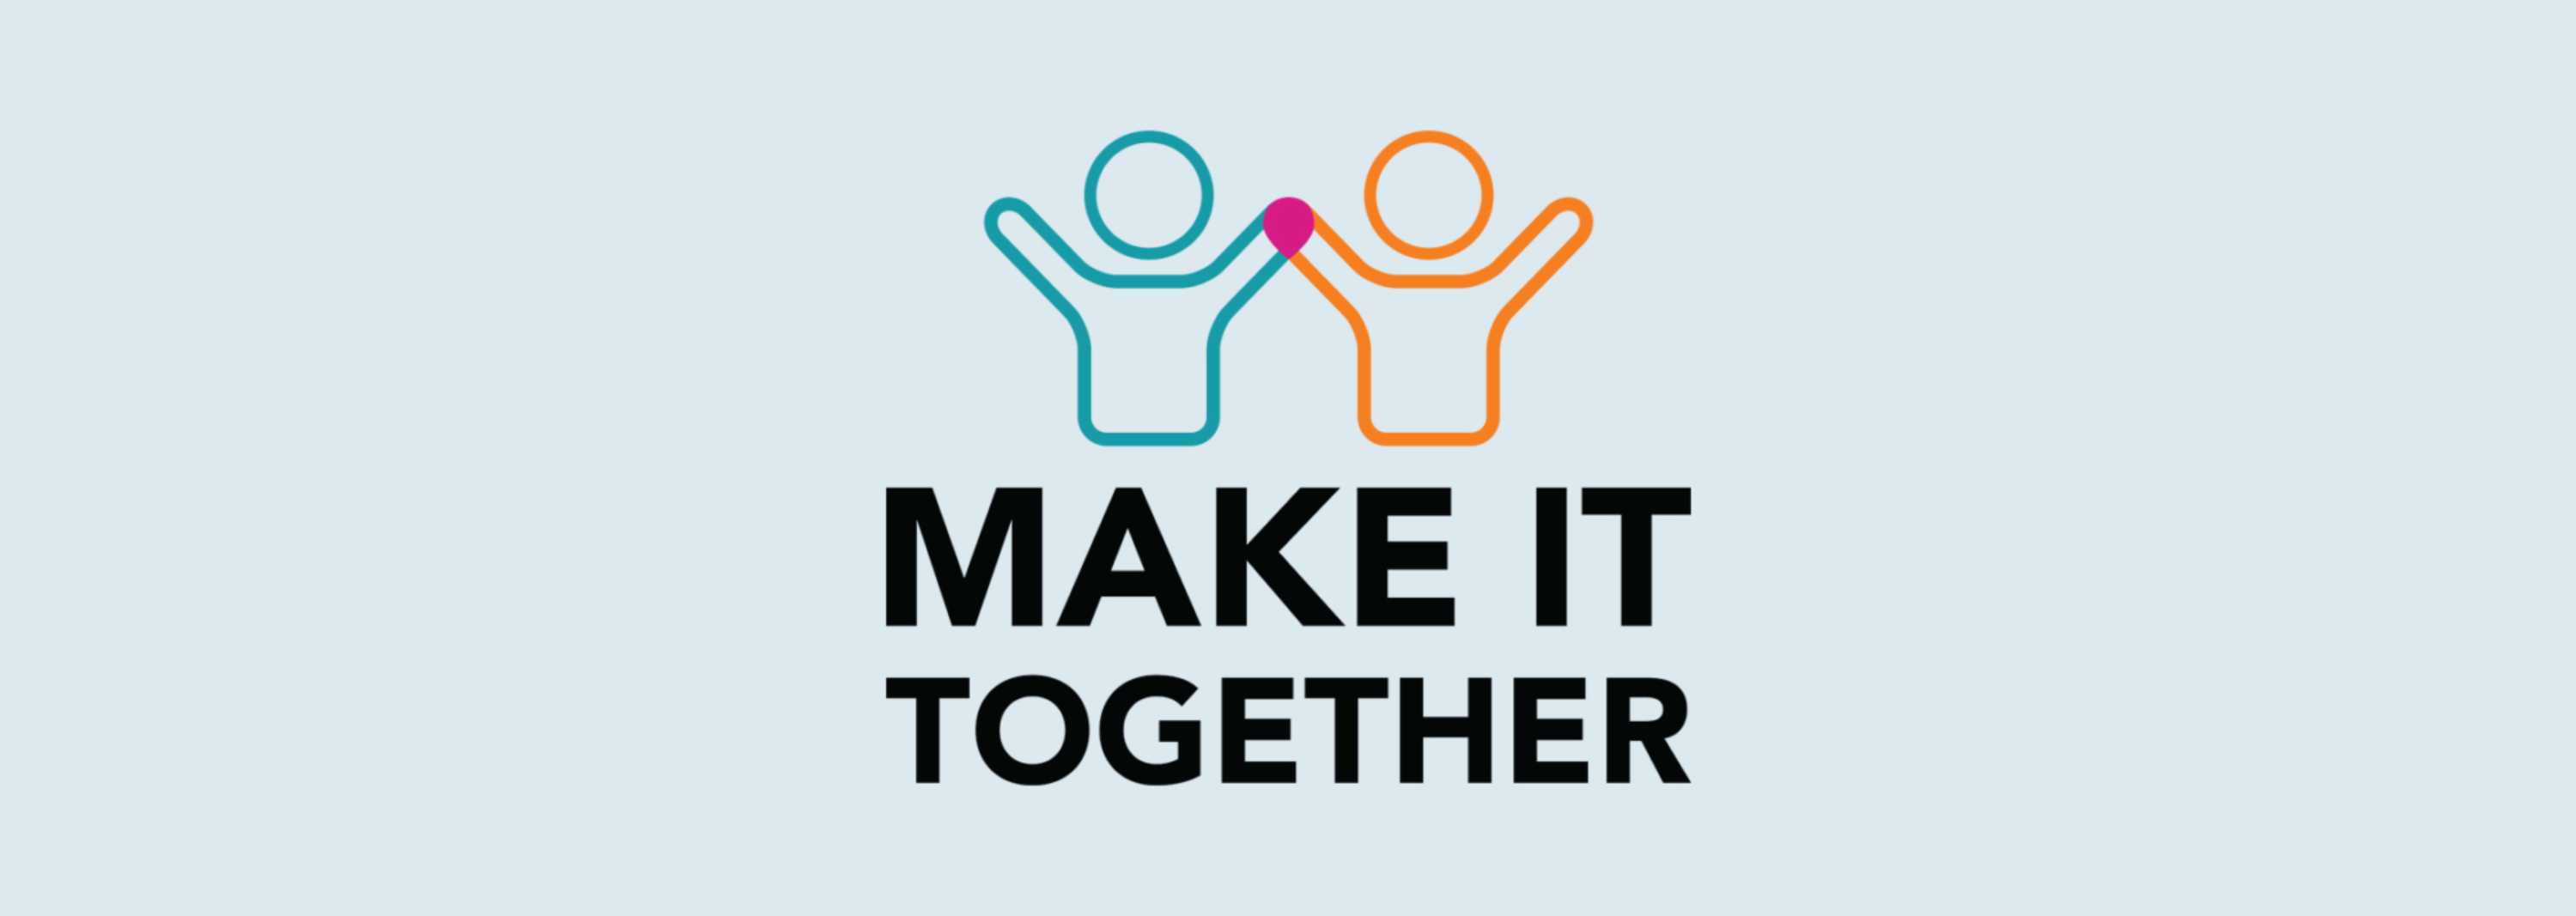 Make It Together 2018 Headbanner